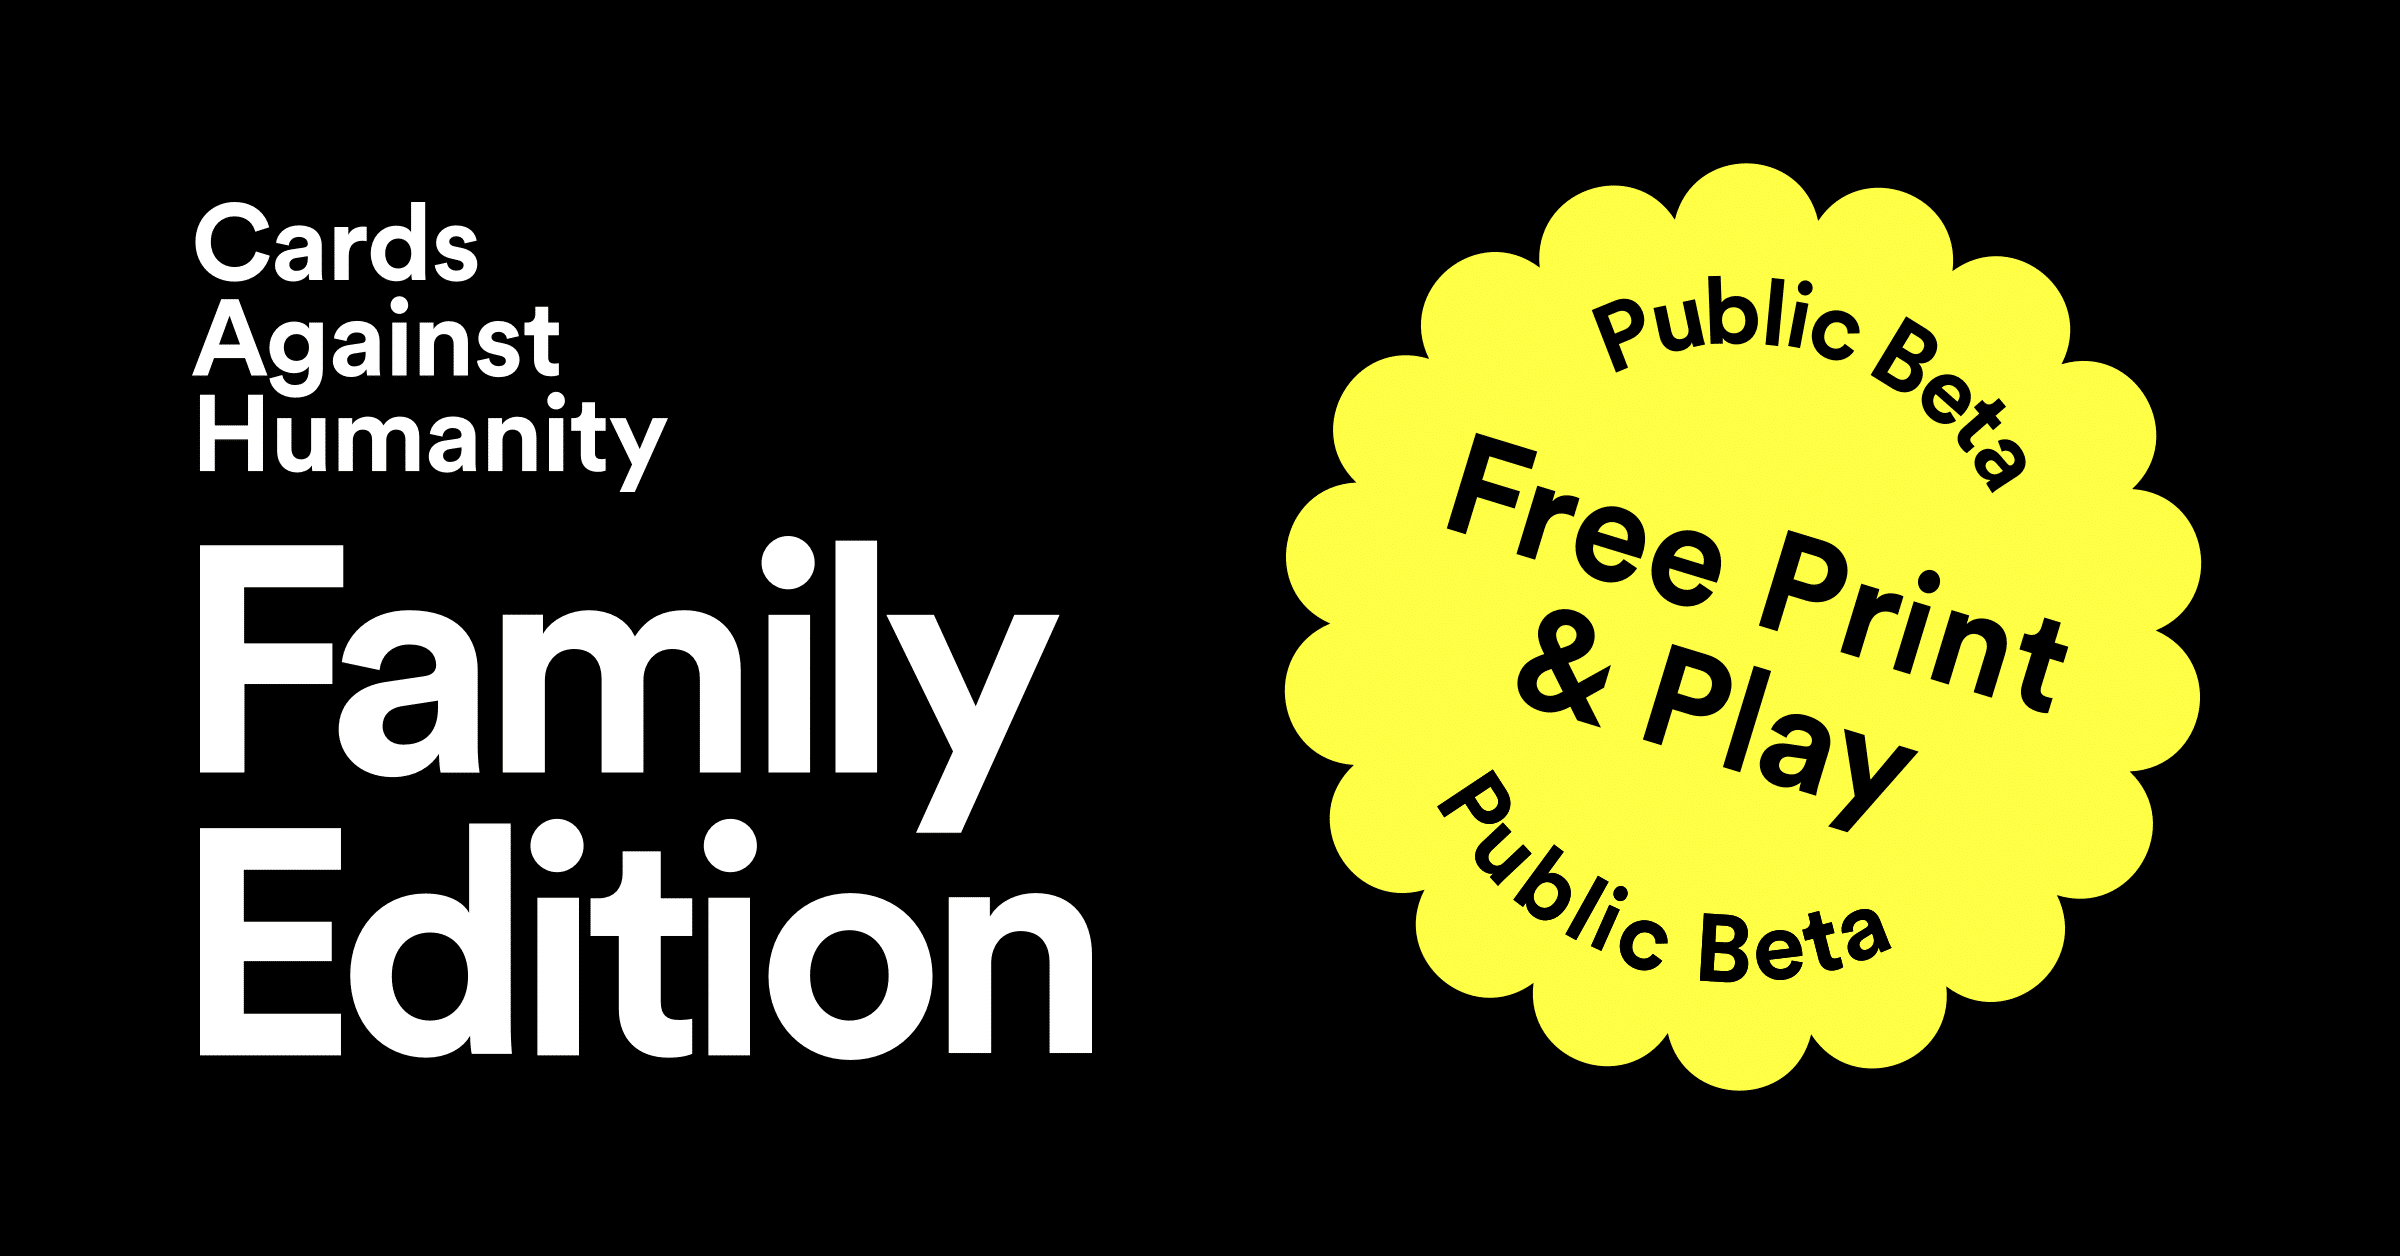 free cards against humanity game